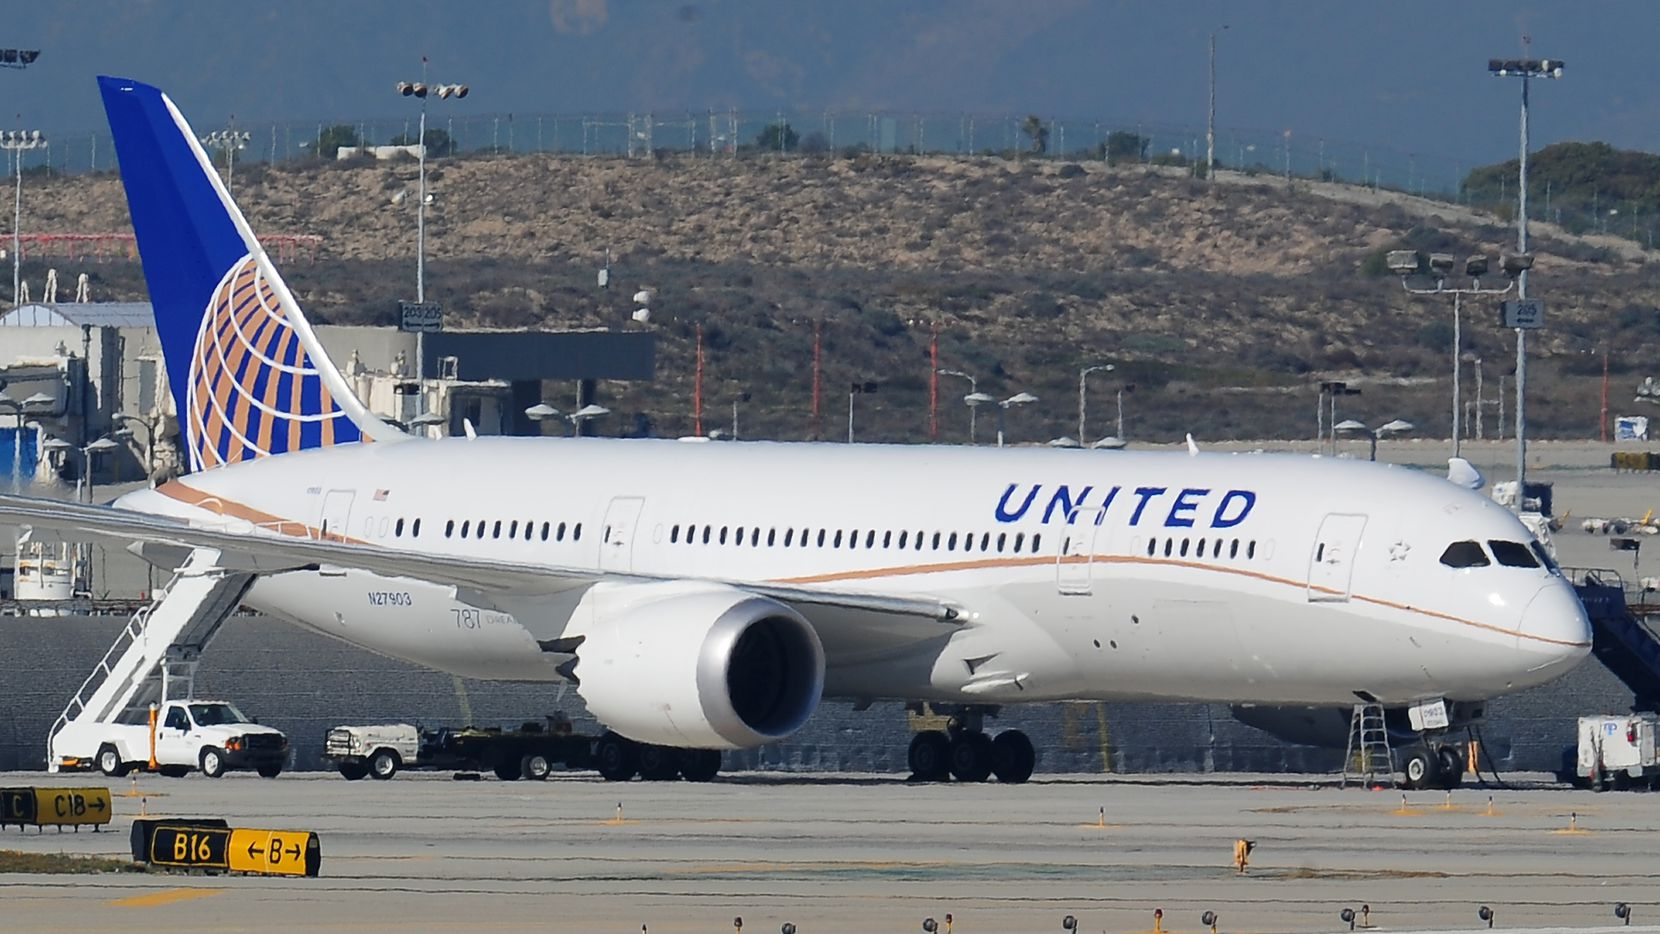 A  United Boeing 787 Dreamliner is seen on the tarmac at Los Angeles International Airport January 17, 2012.